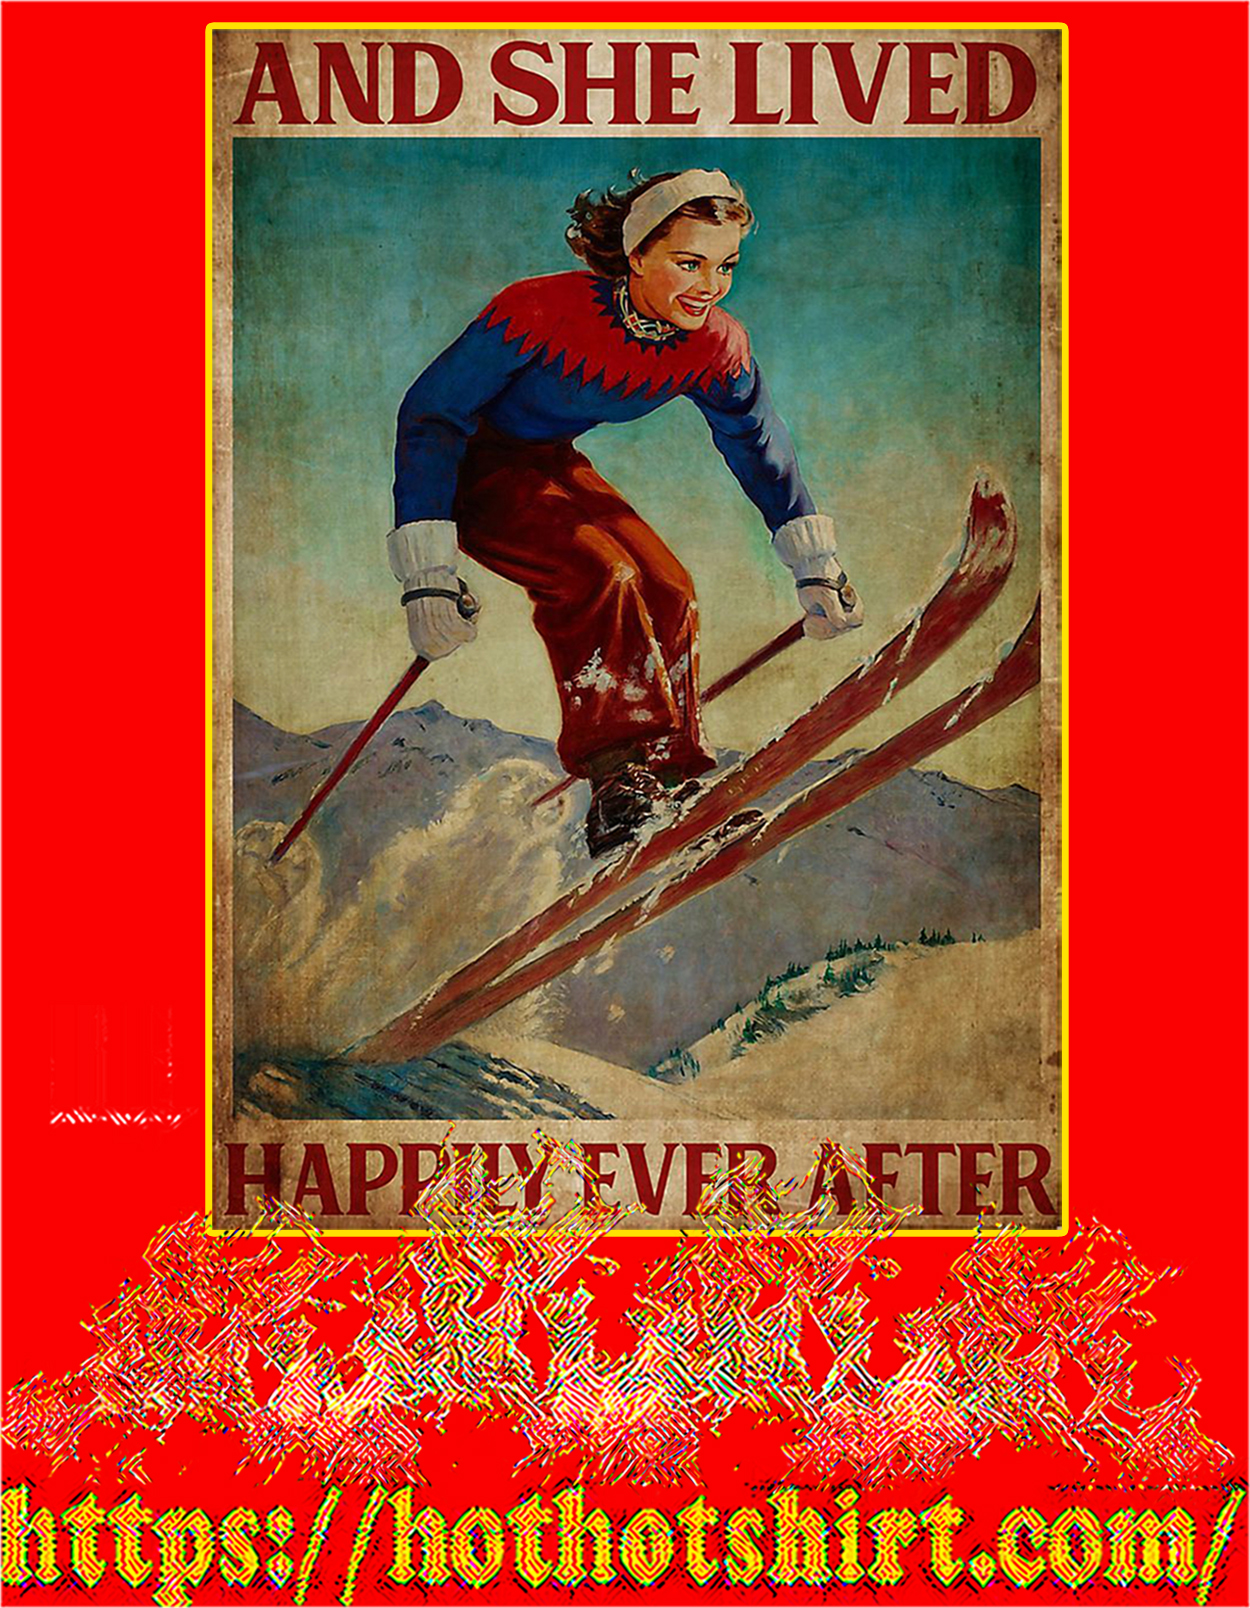 Skiing and she lived happily ever after poster - A3